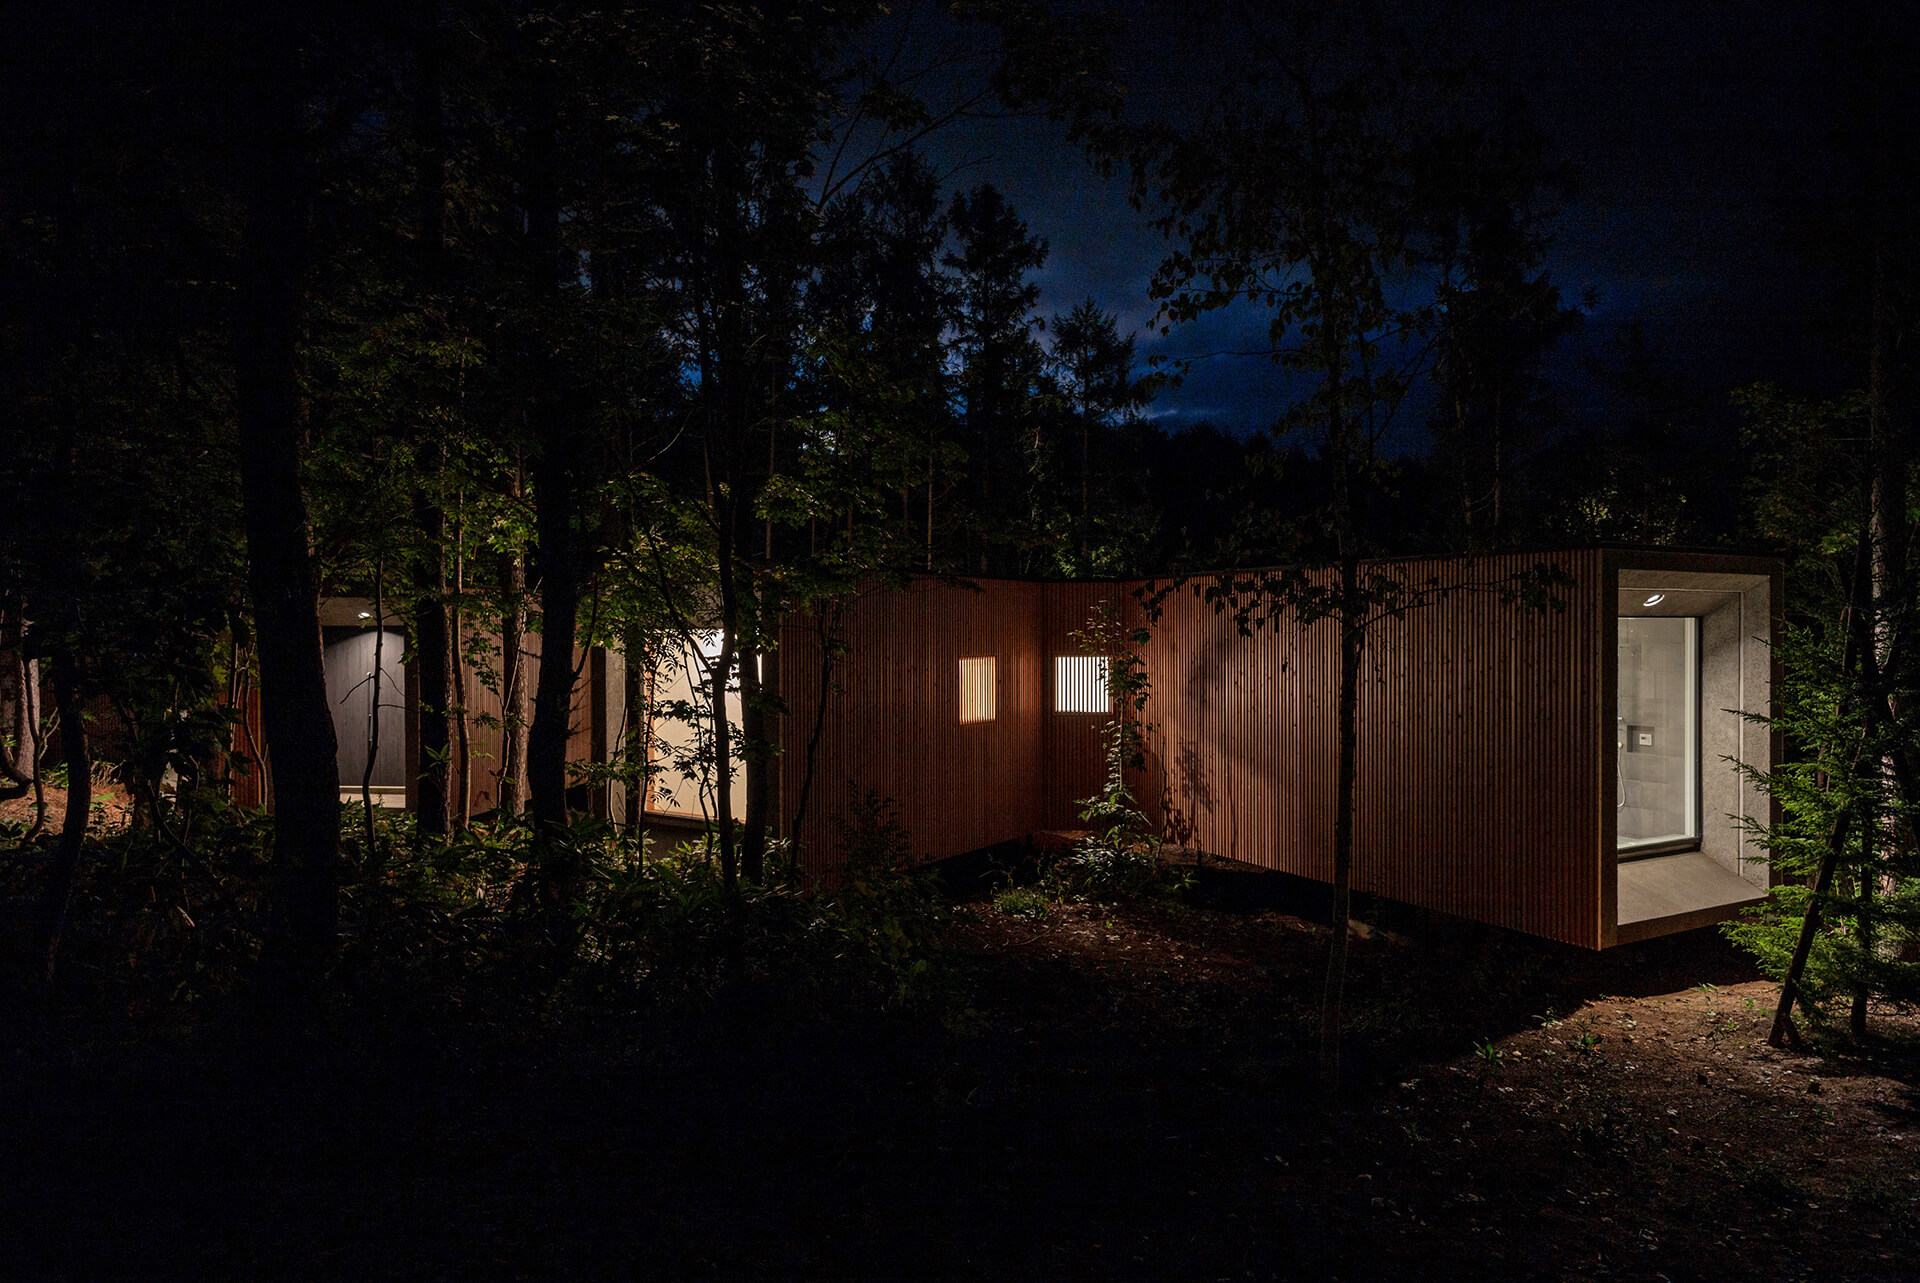 The volume seen at night | House in the Forest designed by Florian Busch Architects | STIRworld